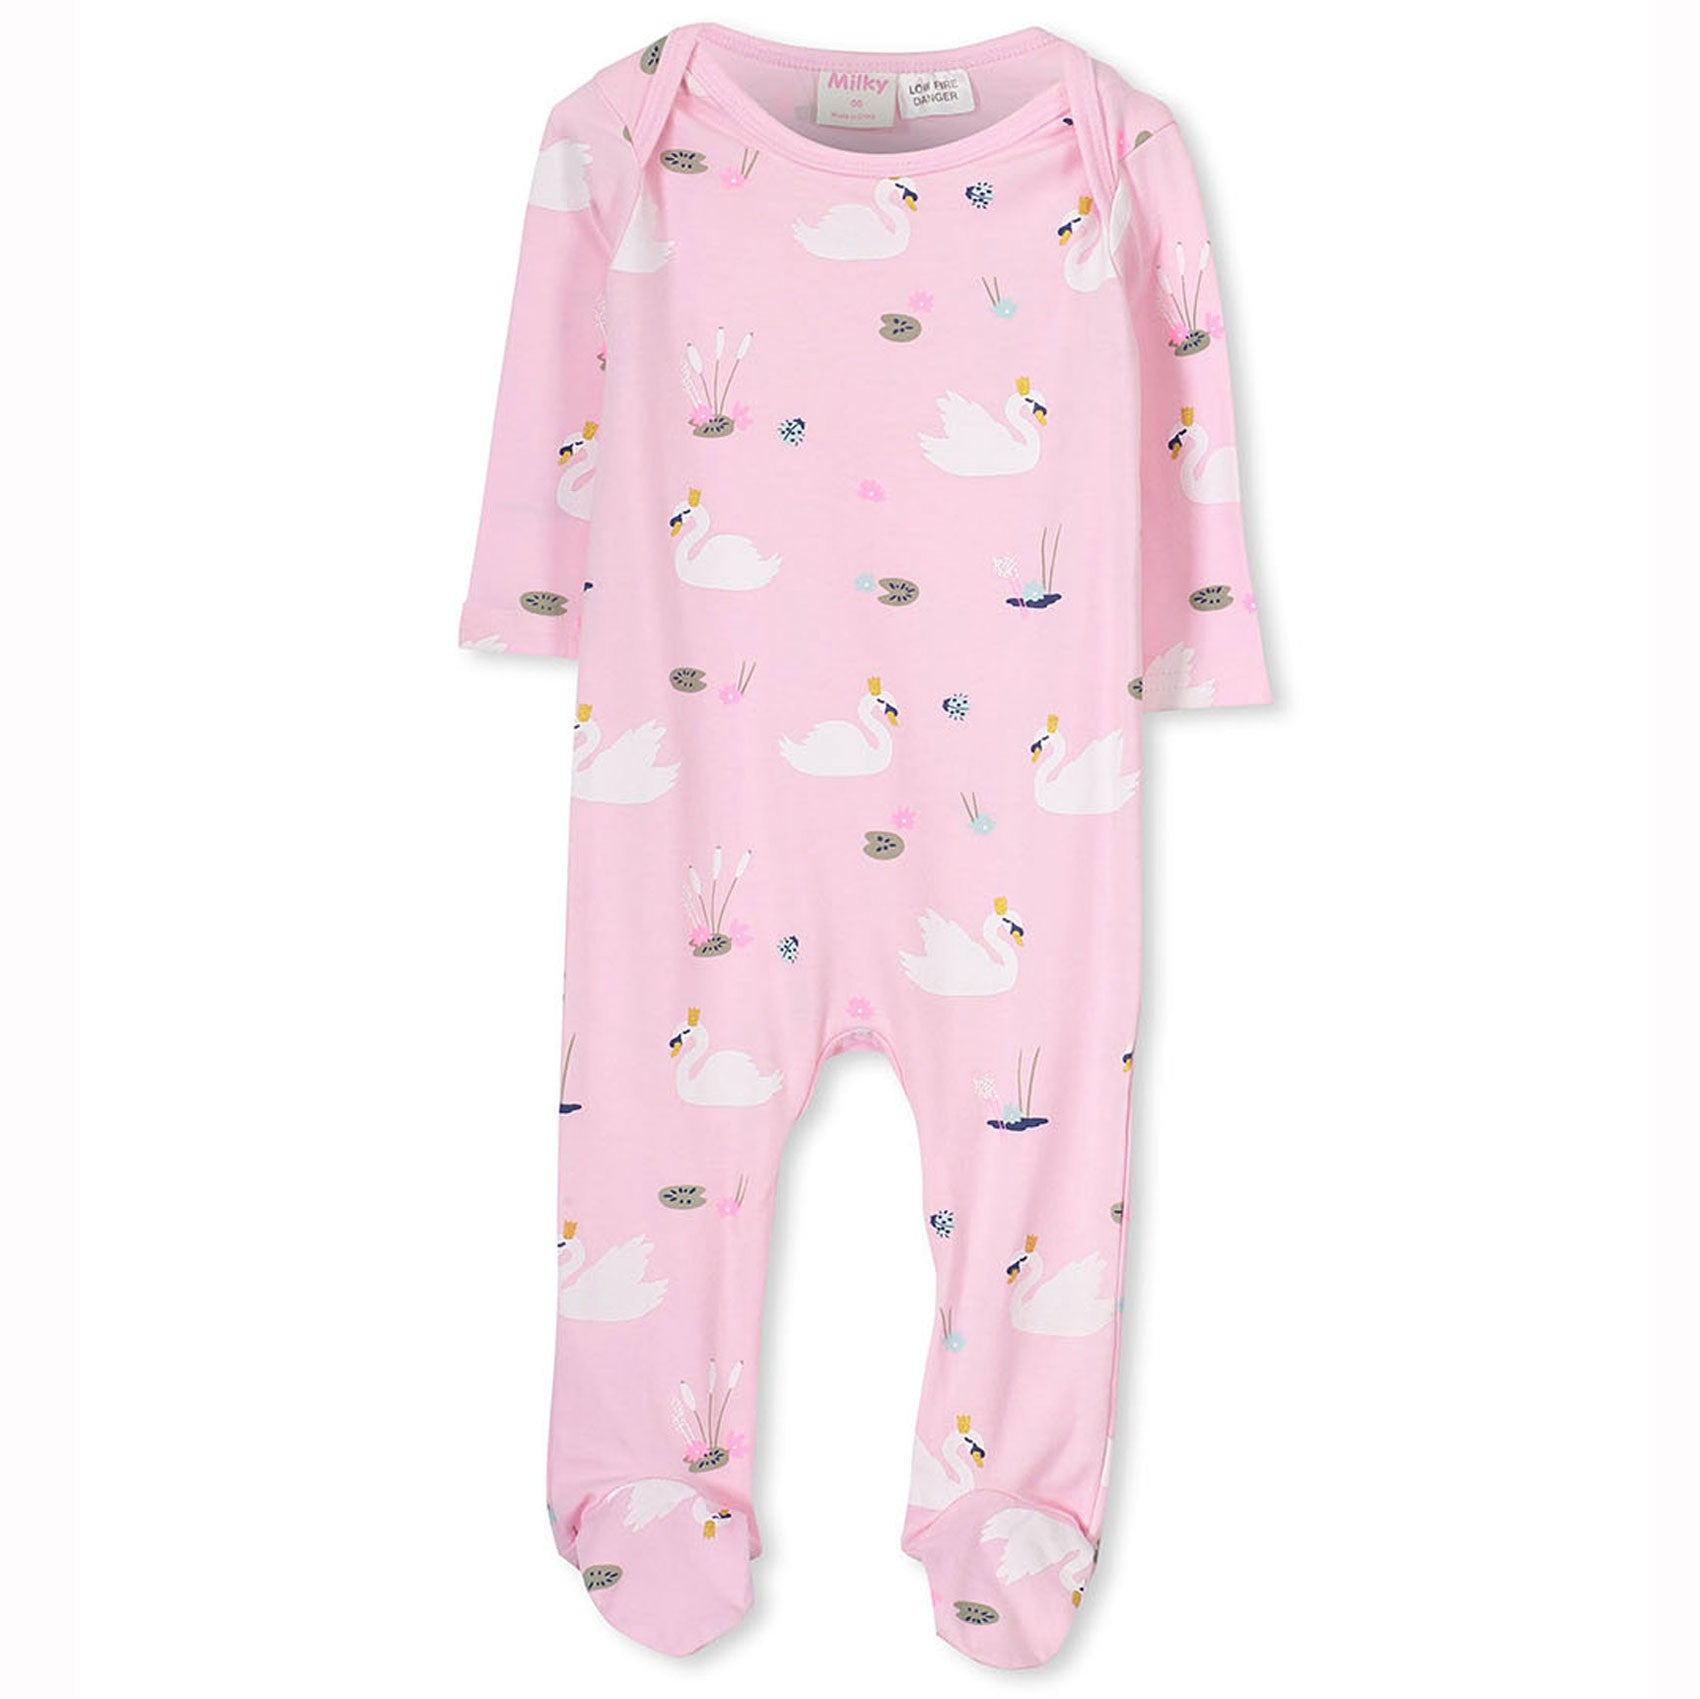 268c7e5c7703 Girls Onesies • Baby Girls Onesies • Girls Onesies Online Tagged ...